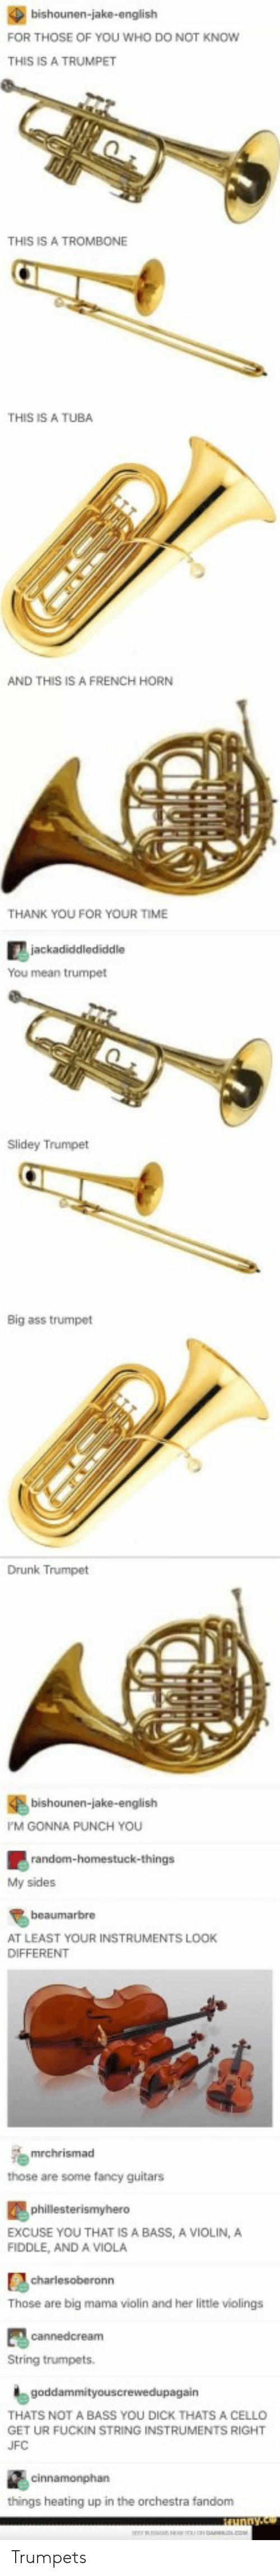 Ass, Drunk, and Ufc: FOR THOSE OF YOU WHO DO NOT KNOW  THIS IS A TRUMPET  THIS IS A TROMBONE  THIS IS A TUBA  AND THIS IS A FRENCH HORN  THANK YOU FOR YOUR TIME  You mean trumpet  Slidey Trumpet  Big ass trumpet  Drunk Trumpet  bishounen-jake-english  M GONNA PUNCH YOU  My sides  beaumarbre  AT LEAST YOUR INSTRUMENTS LOOK  DIFFERENT  those are some fancy guitars  EXCUSE YOU THAT IS A BASS, A VIOLIN, A  FIDDLE, AND A VIOLA  Those are big mama violin and her little violings  String trumpets.  THATS NOT A BASS YOU DICK THATS A CELLO  GET UR FUCKIN STRING INSTRUMENTS RIGHT  UFC  things heating up in the orchestra fandonm Trumpets